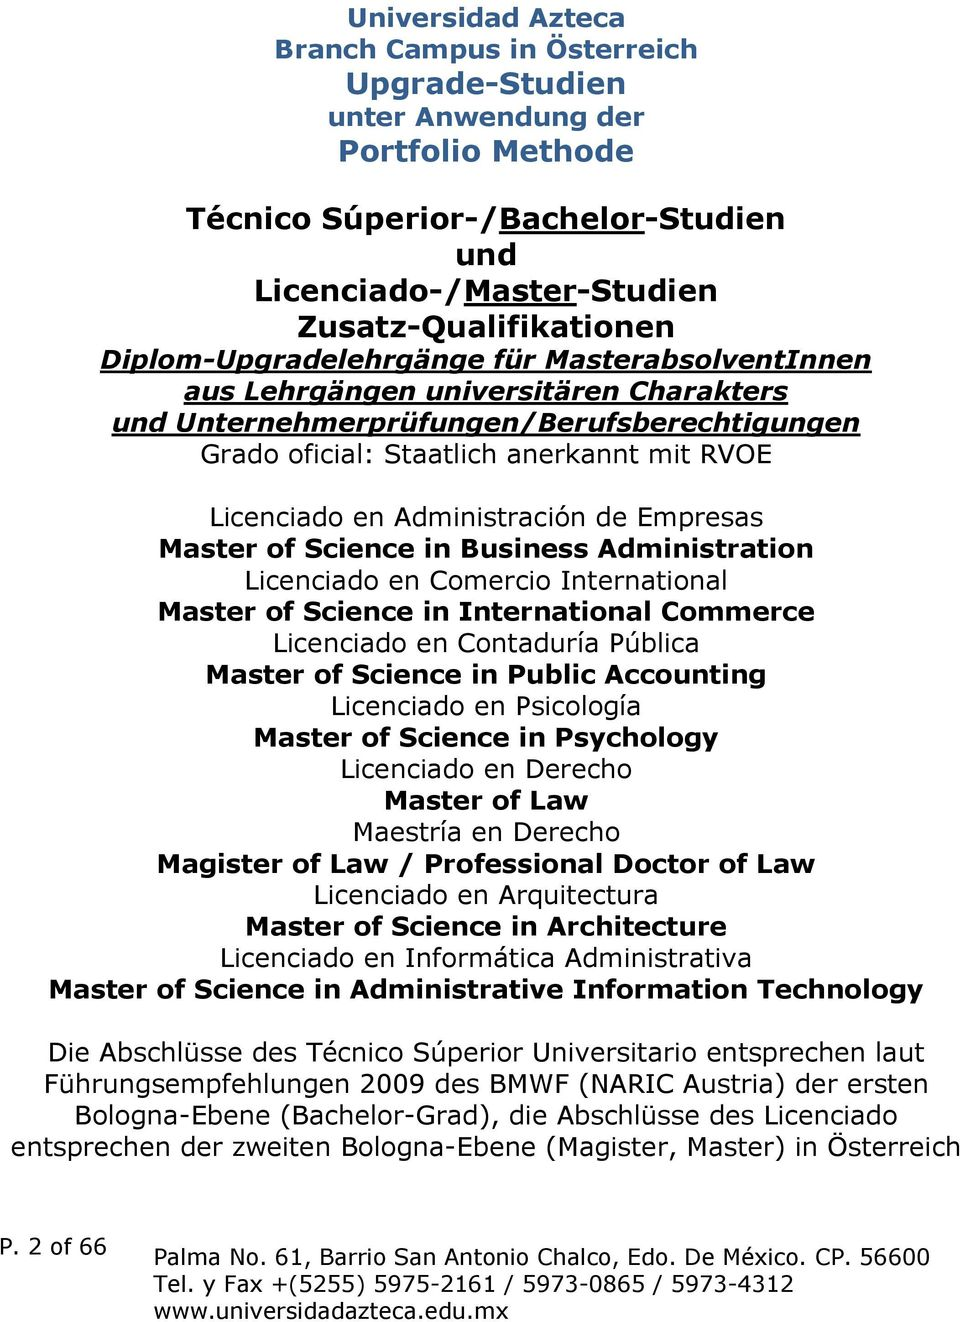 Administración de Empresas Master of Science in Business Administration Licenciado en Comercio International Master of Science in International Commerce Licenciado en Contaduría Pública Master of